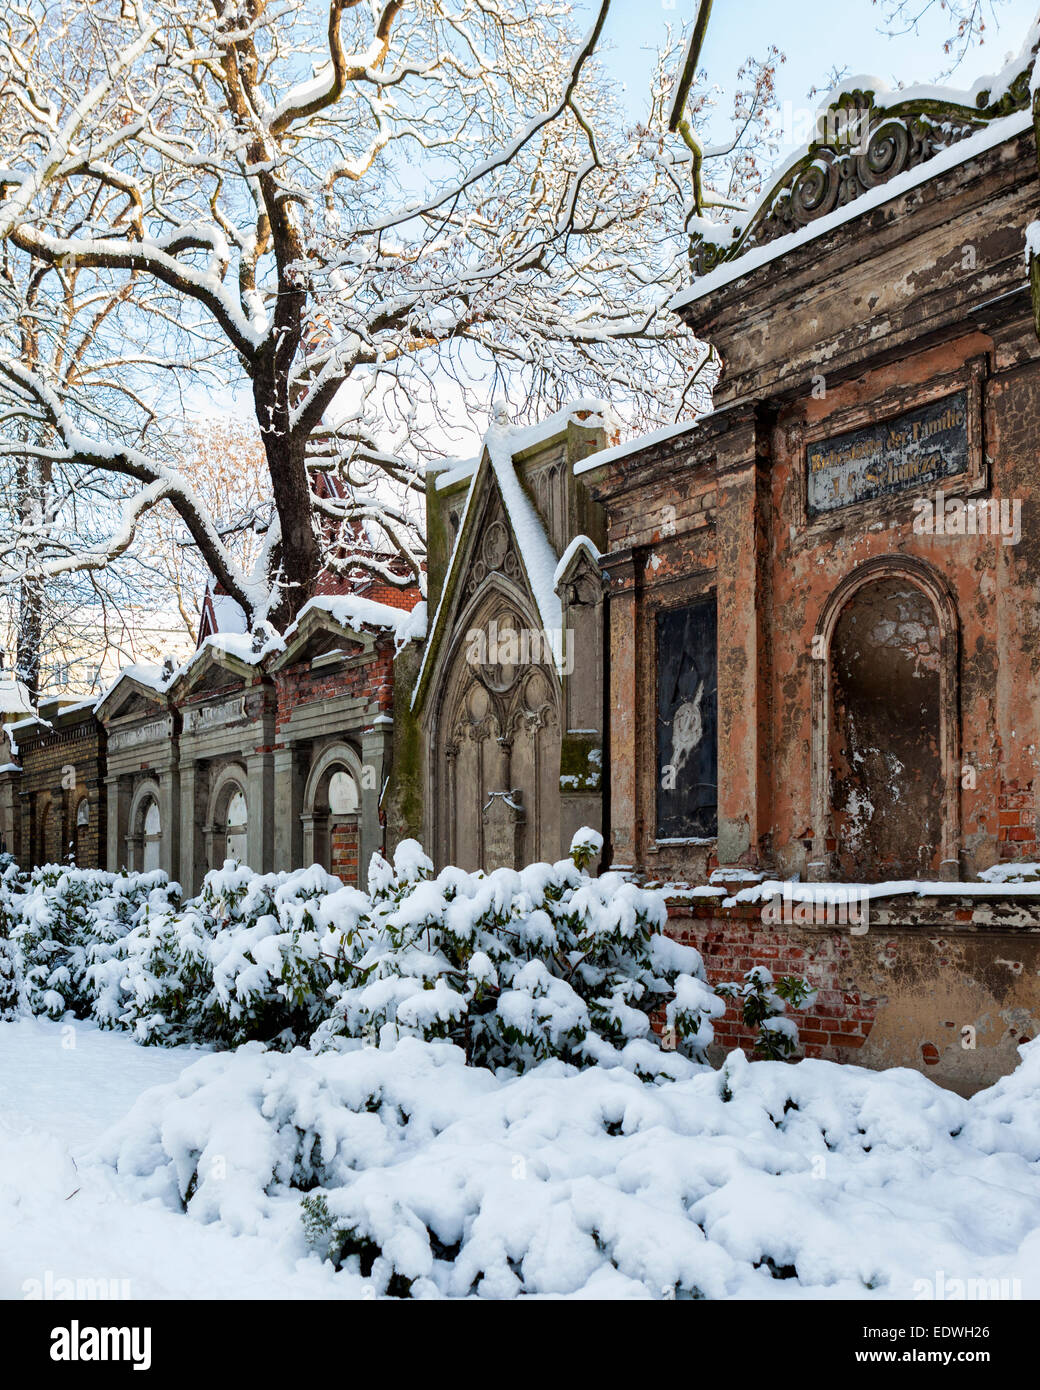 Sophien Parish cemetery - decorative memorials and tombs & snow covered trees in Winter, Friedhof der Sophien - Stock Image